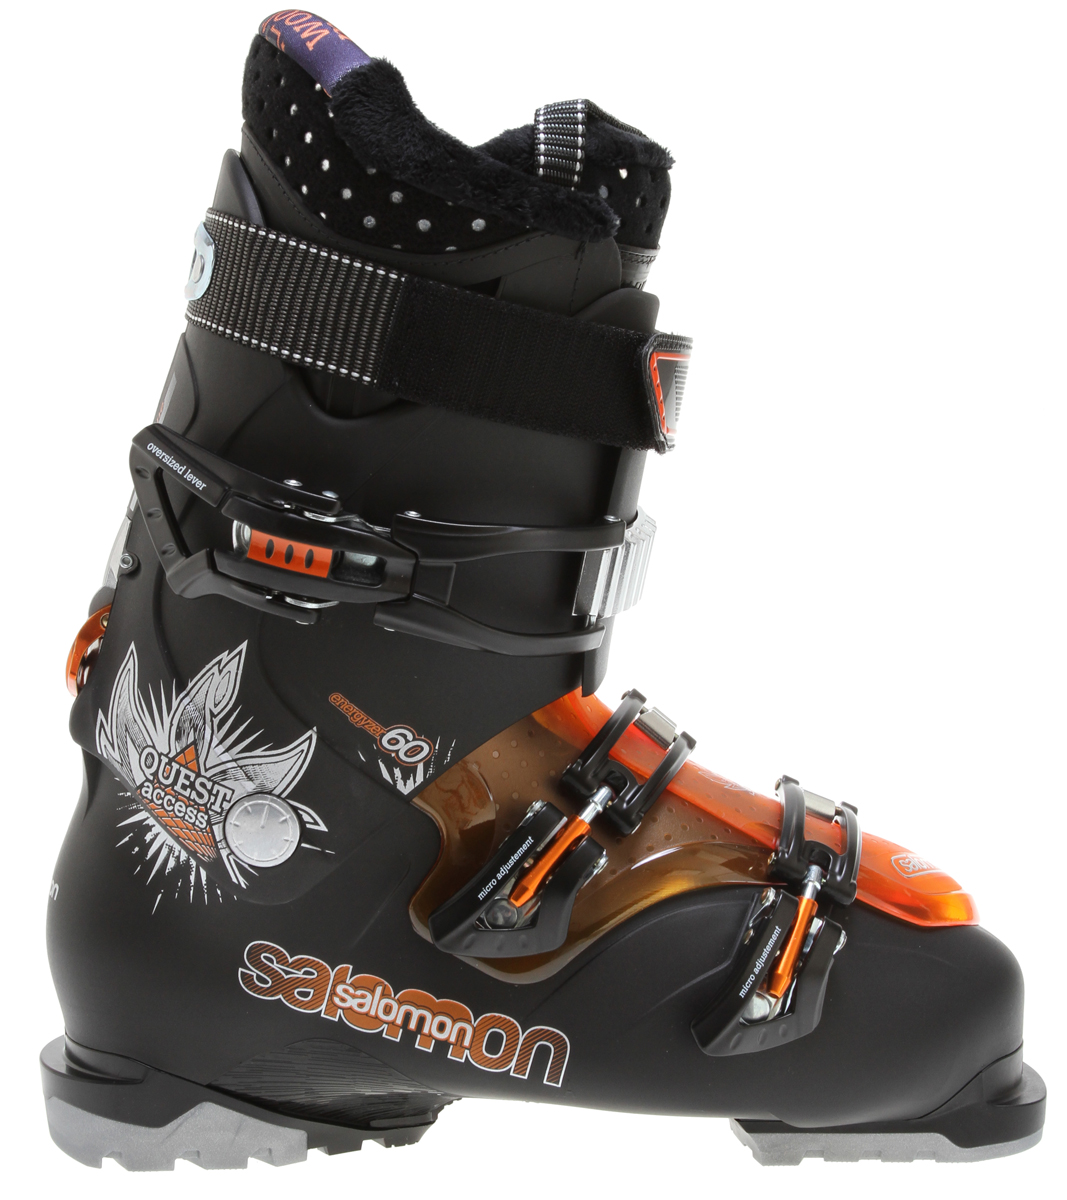 Ski Light weight, convenient all-mountain boot with a unique magnesium Backbone system to combine easy walking and great skiing performance.Key Features of the Salomon Quest Access 60 Ski Boots: Bi-material PP lower shell Bi-material PP upper cuff Easy step in overlap Spaceframe Heel and toe removable din pads Backbone release Boot board My Custom Fit Comfort Woolmetal 2 micro alu + 1 vario buckles - $299.95